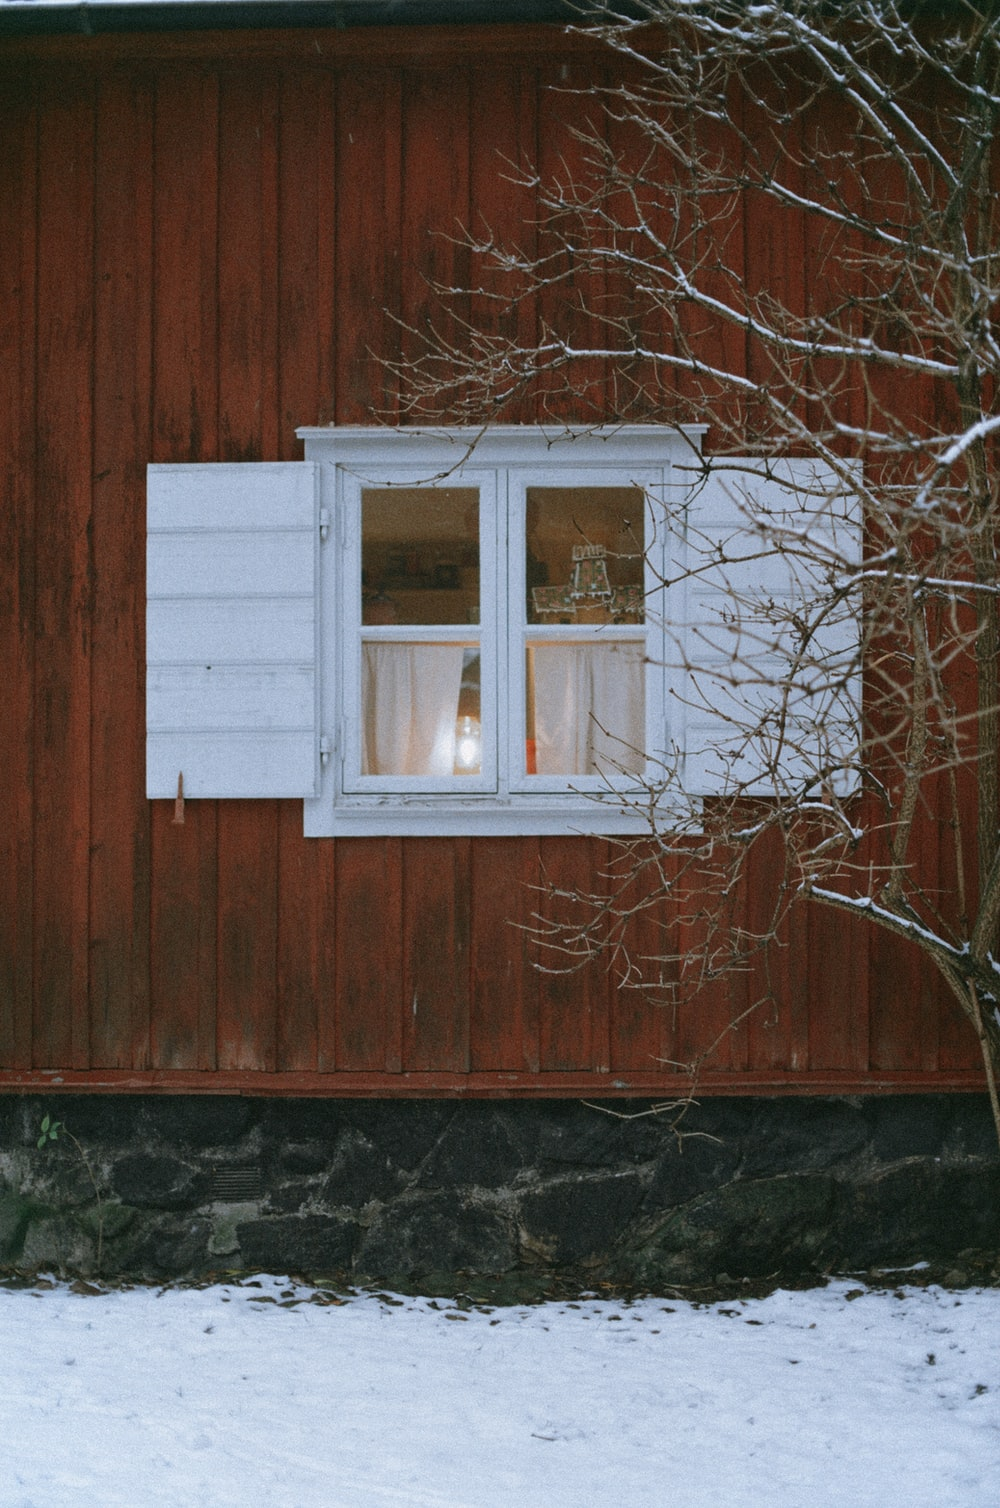 white wooden window frame on brown wooden wall